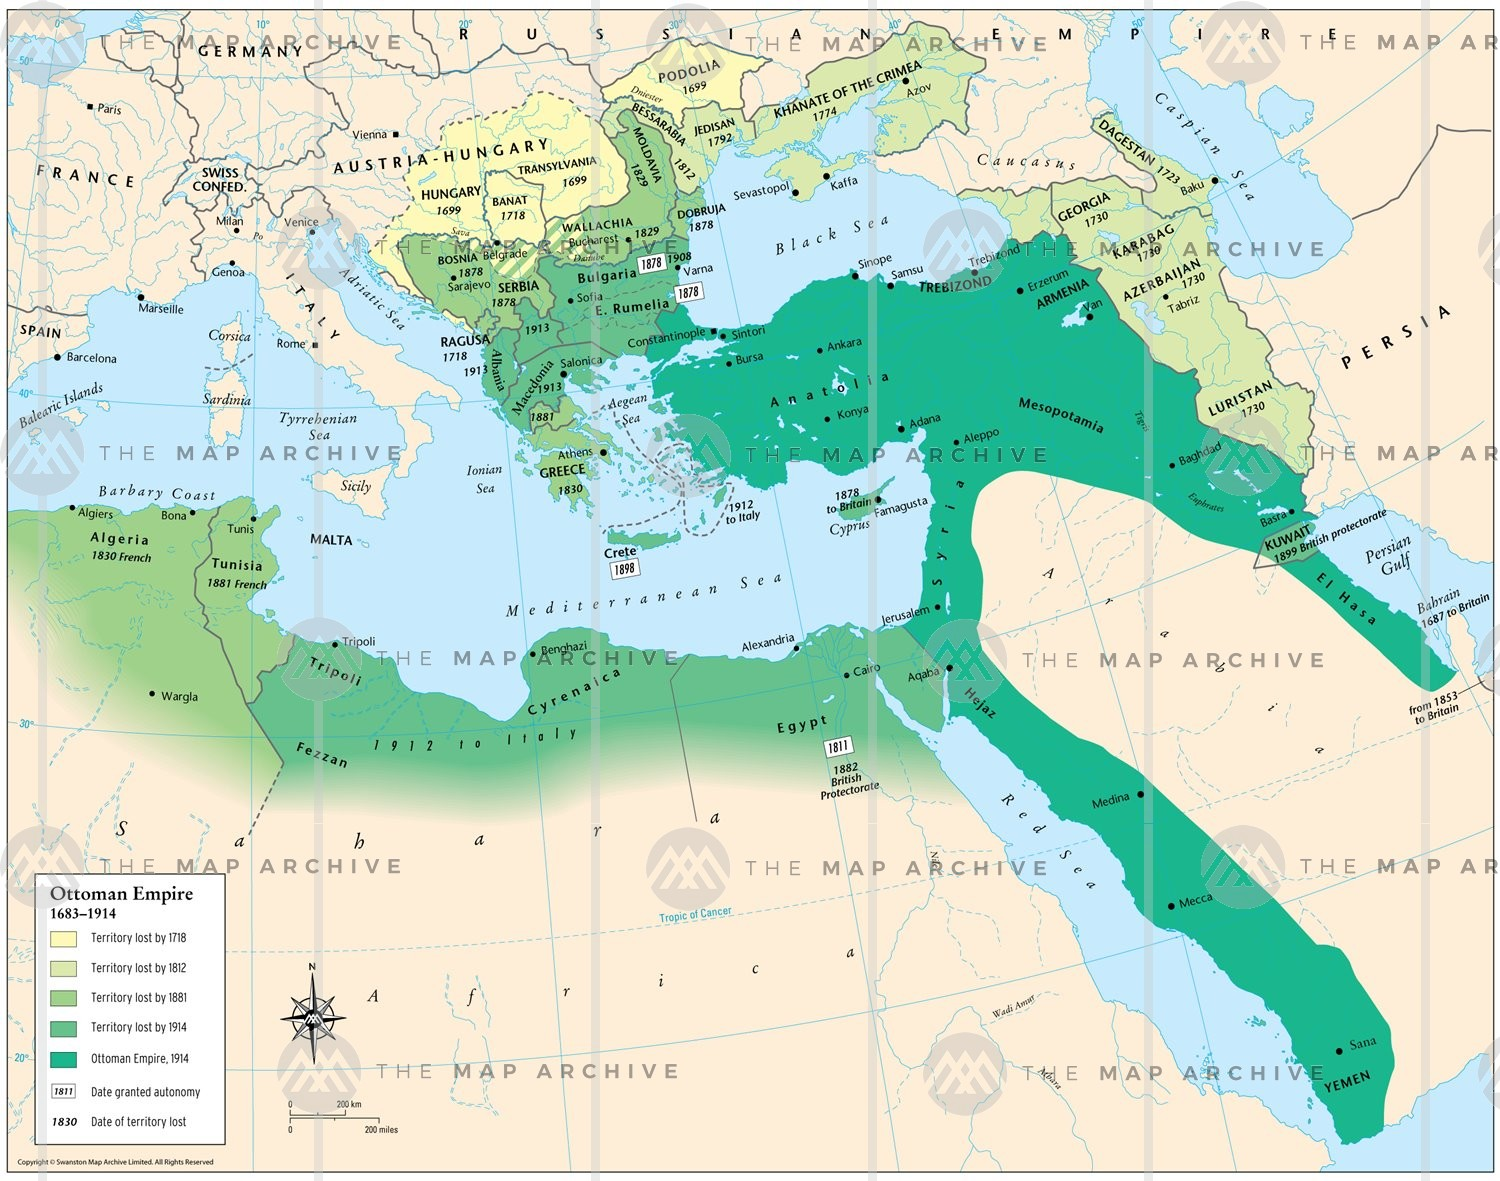 Ottoman Empire map